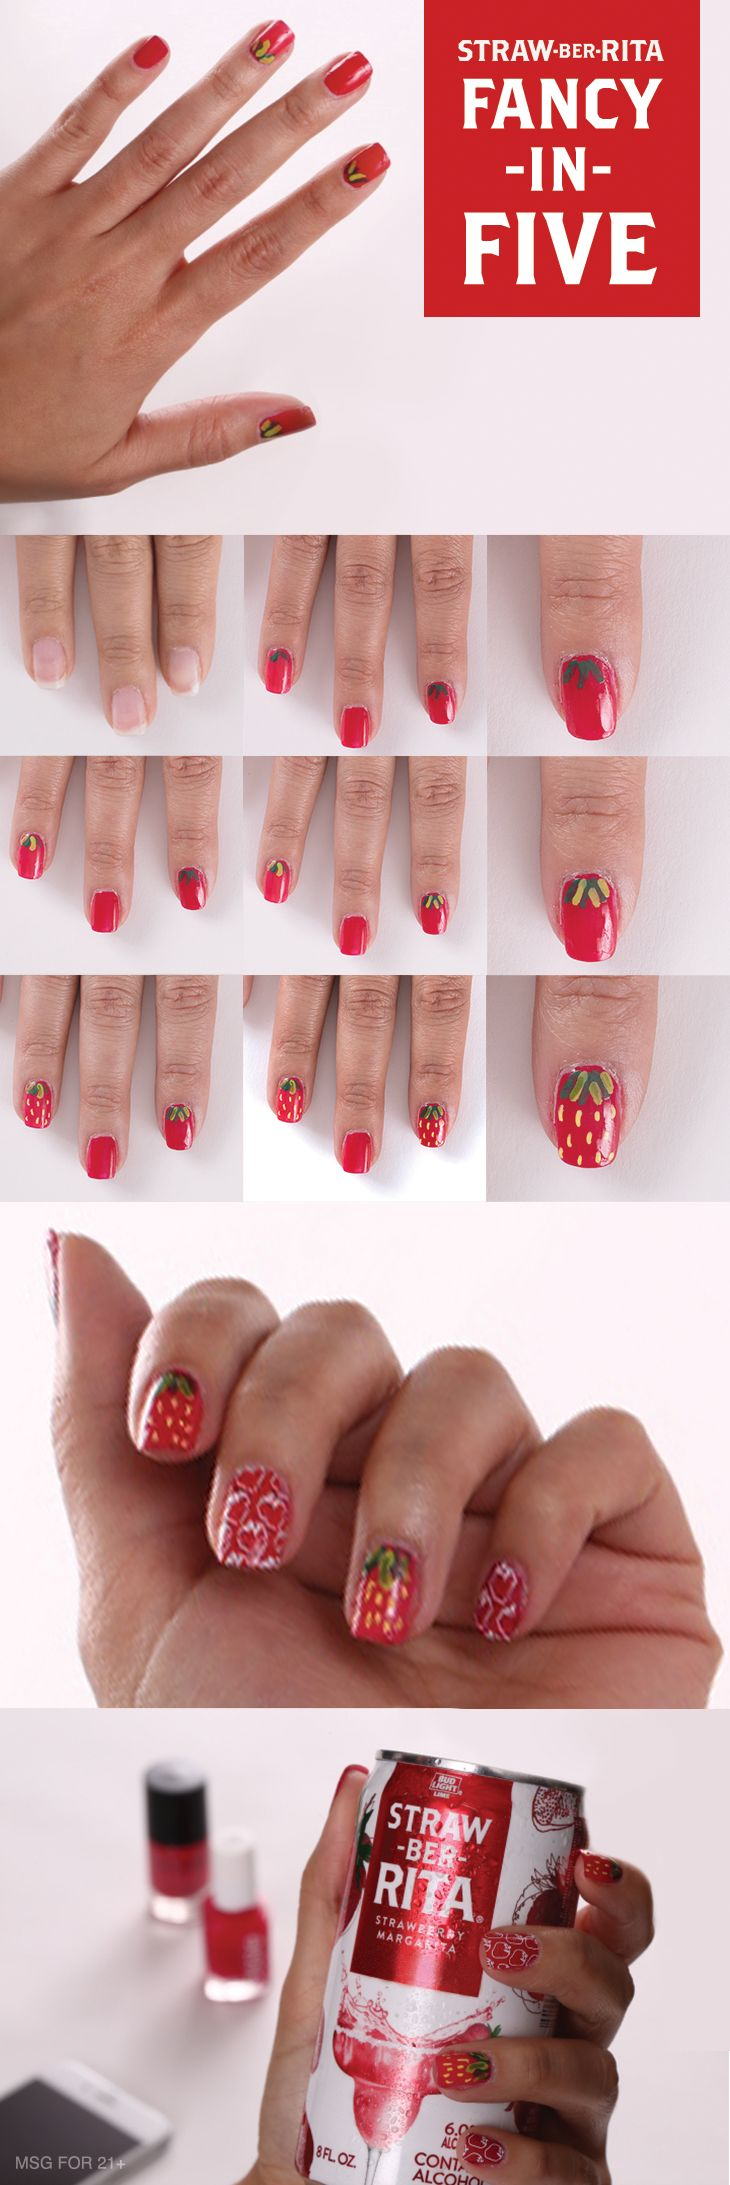 Looking for some ideas to spice up your next party look? This Straw-Ber-Rita inspired nail art is the perfect design to elevate your Spring look